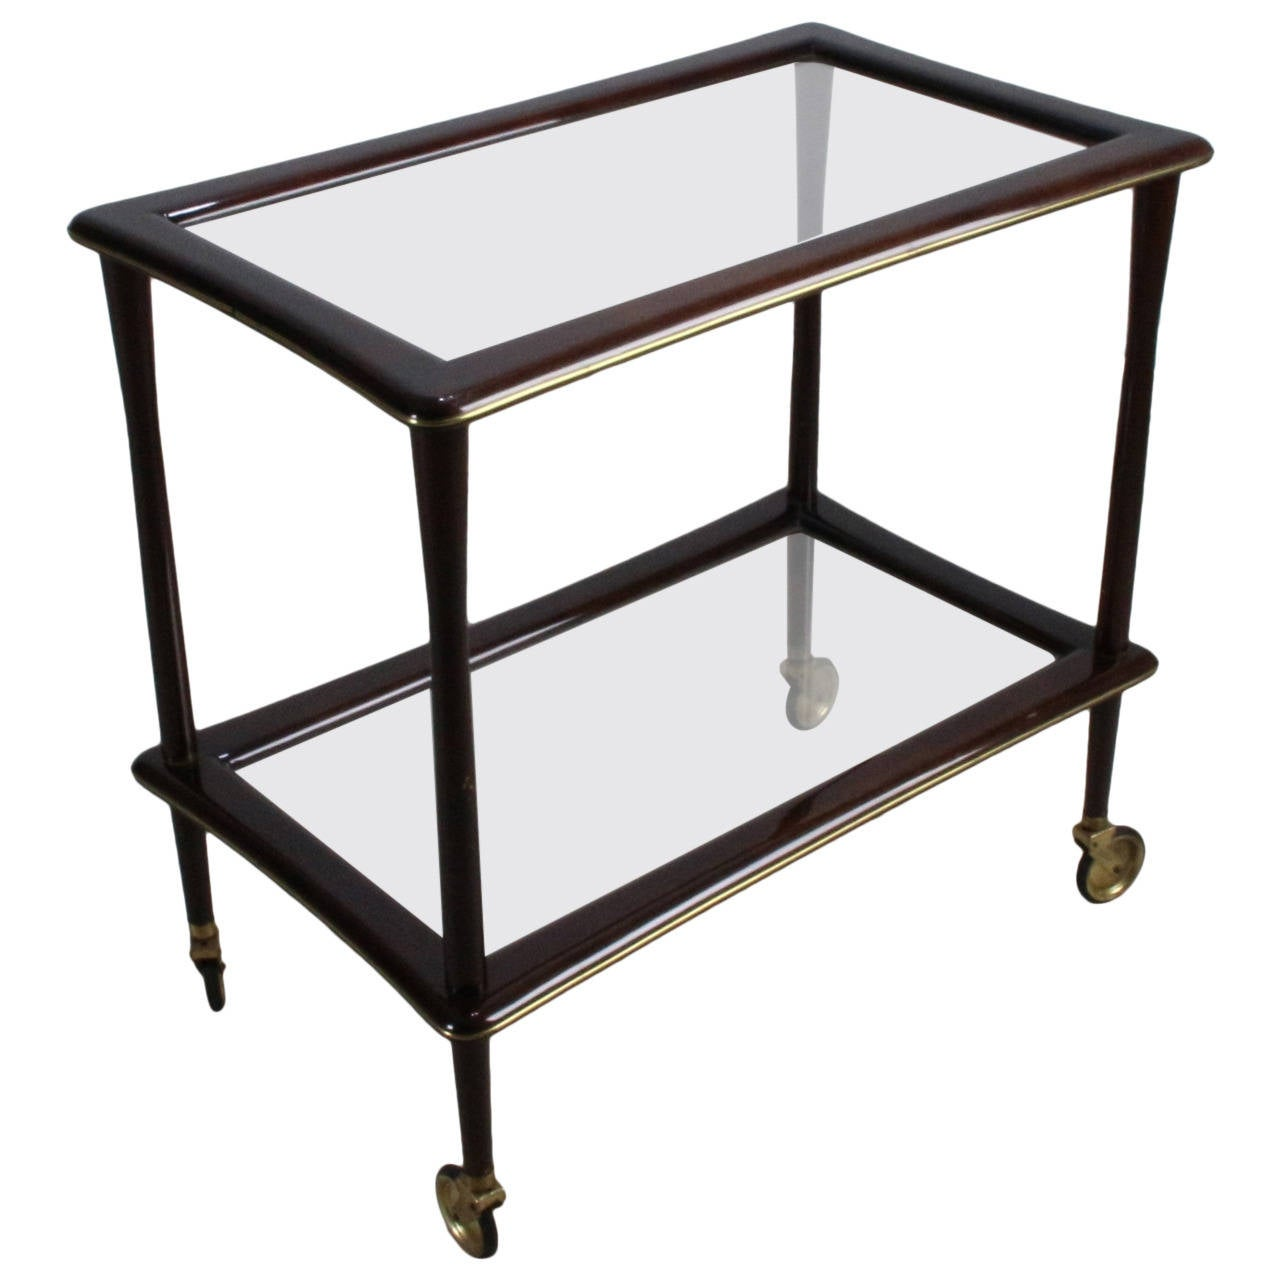 Italian lacca style tea trolley cart with brass lining for sale at italian lacca style tea trolley cart with brass lining 1 geotapseo Choice Image